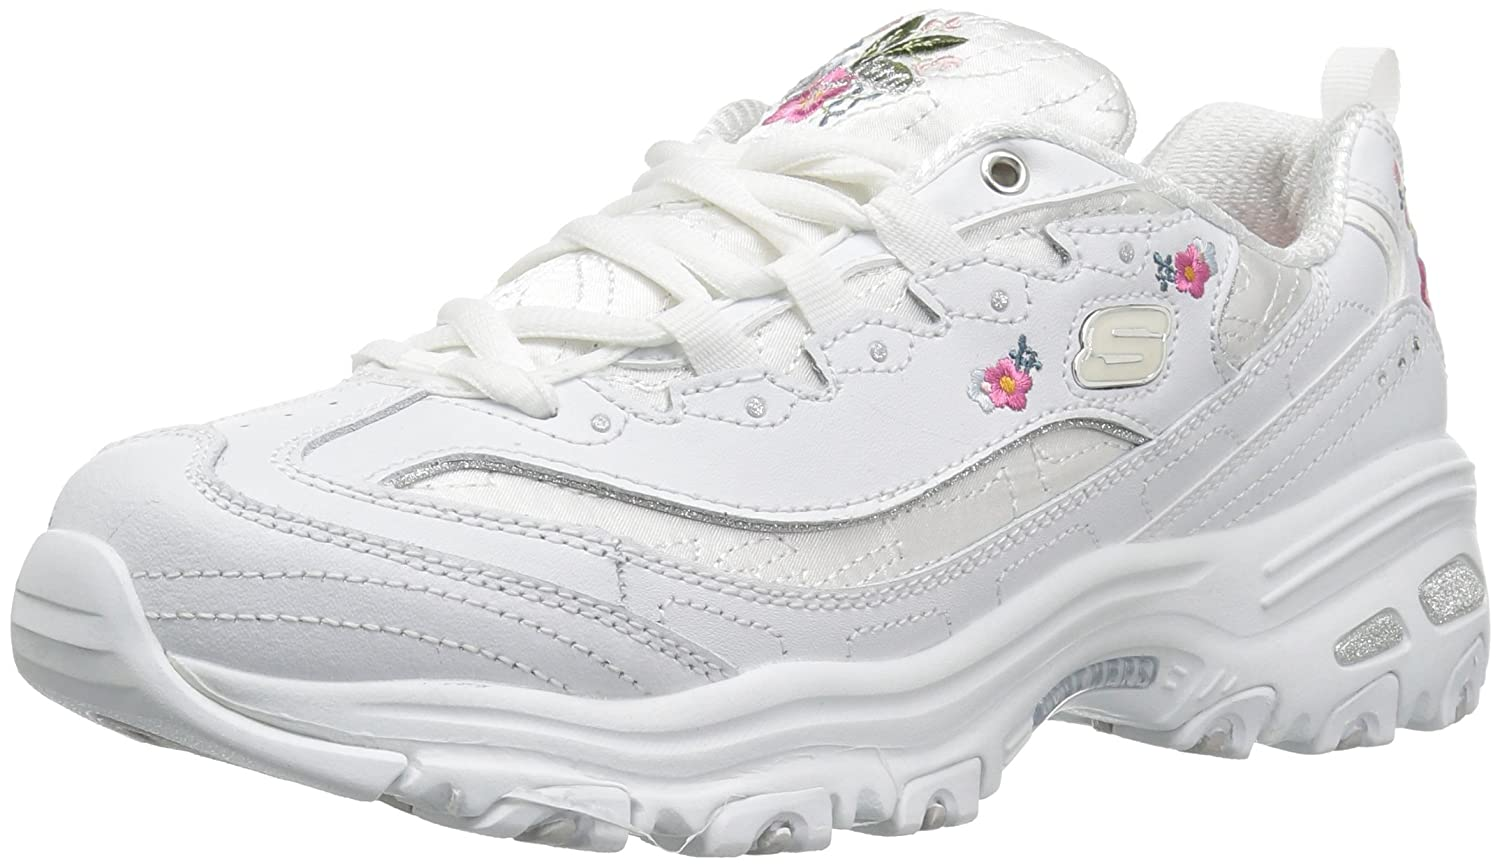 Skechers Women's Bright Blossoms Sneaker